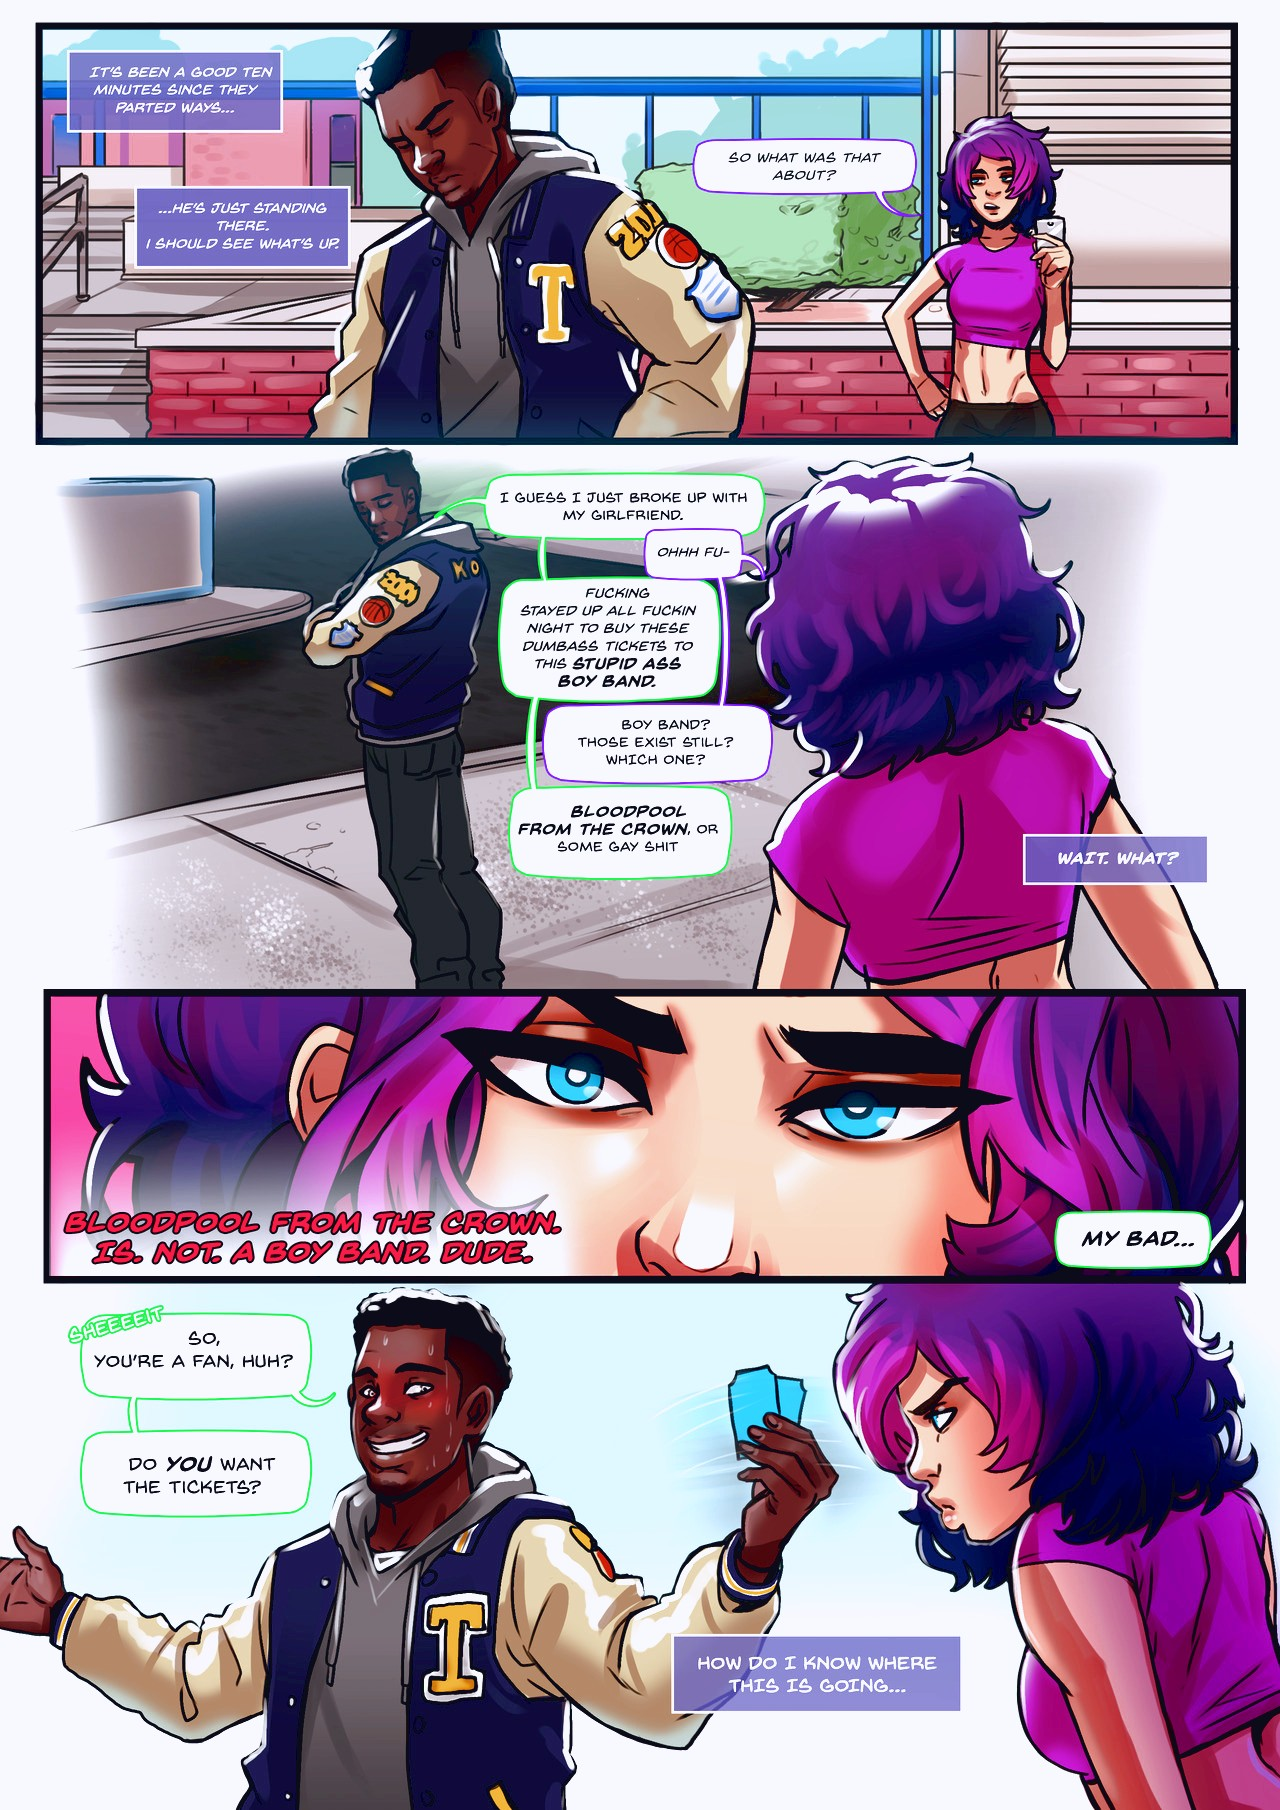 The Backdoor Pass page 02